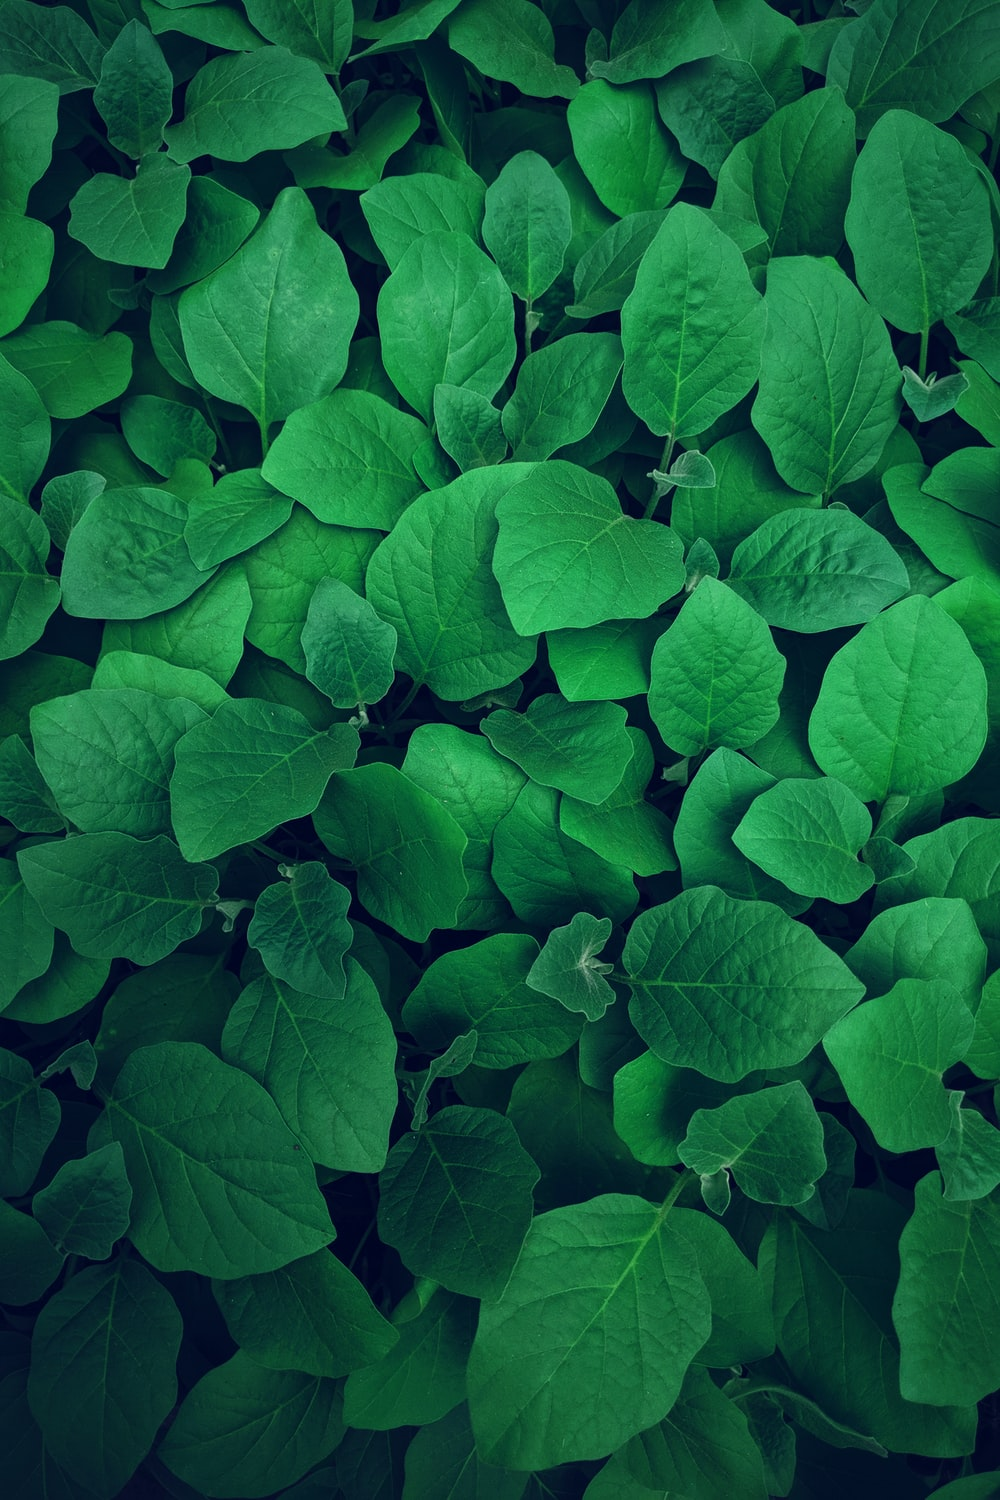 photography of green leaves